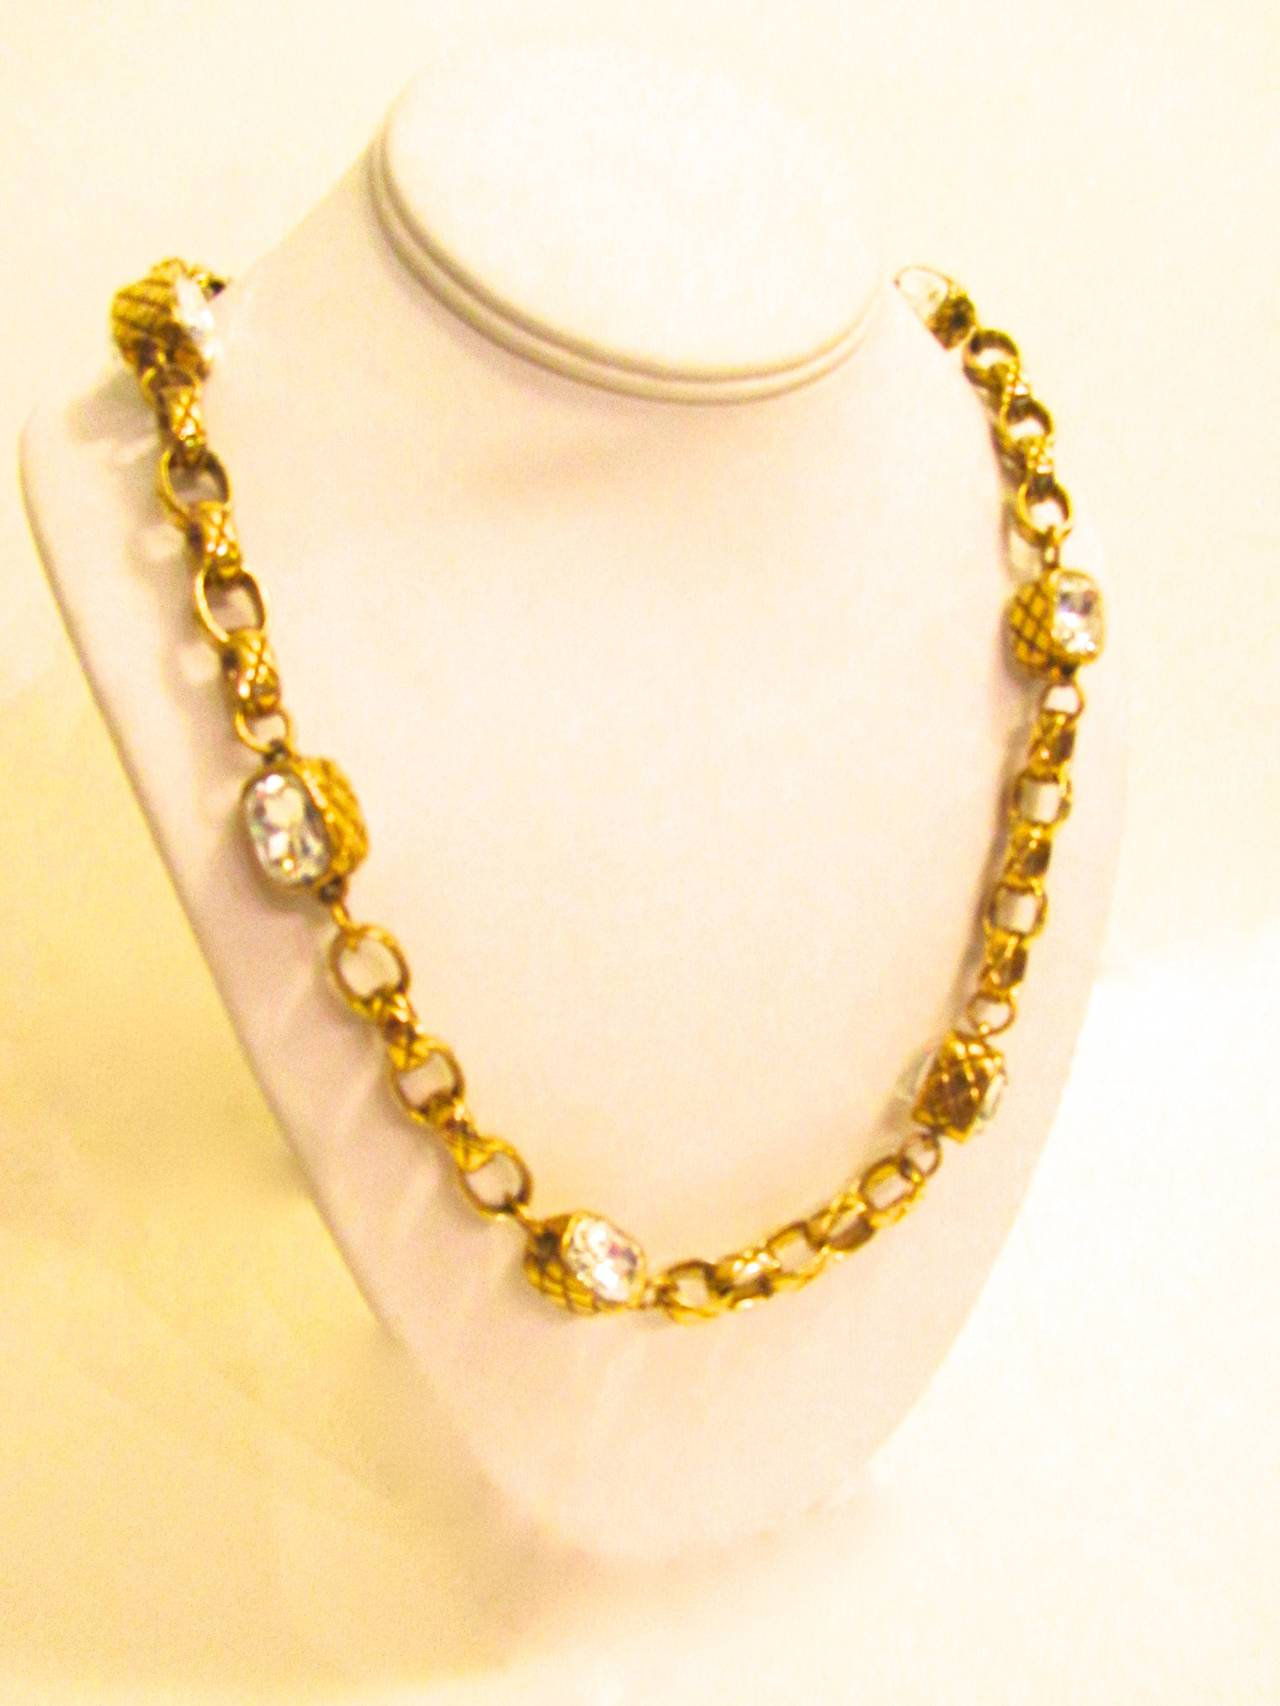 CHANEL Rare necklace - Gold Toned Matelasse - Strass Faceted Crystals - 1980's 2